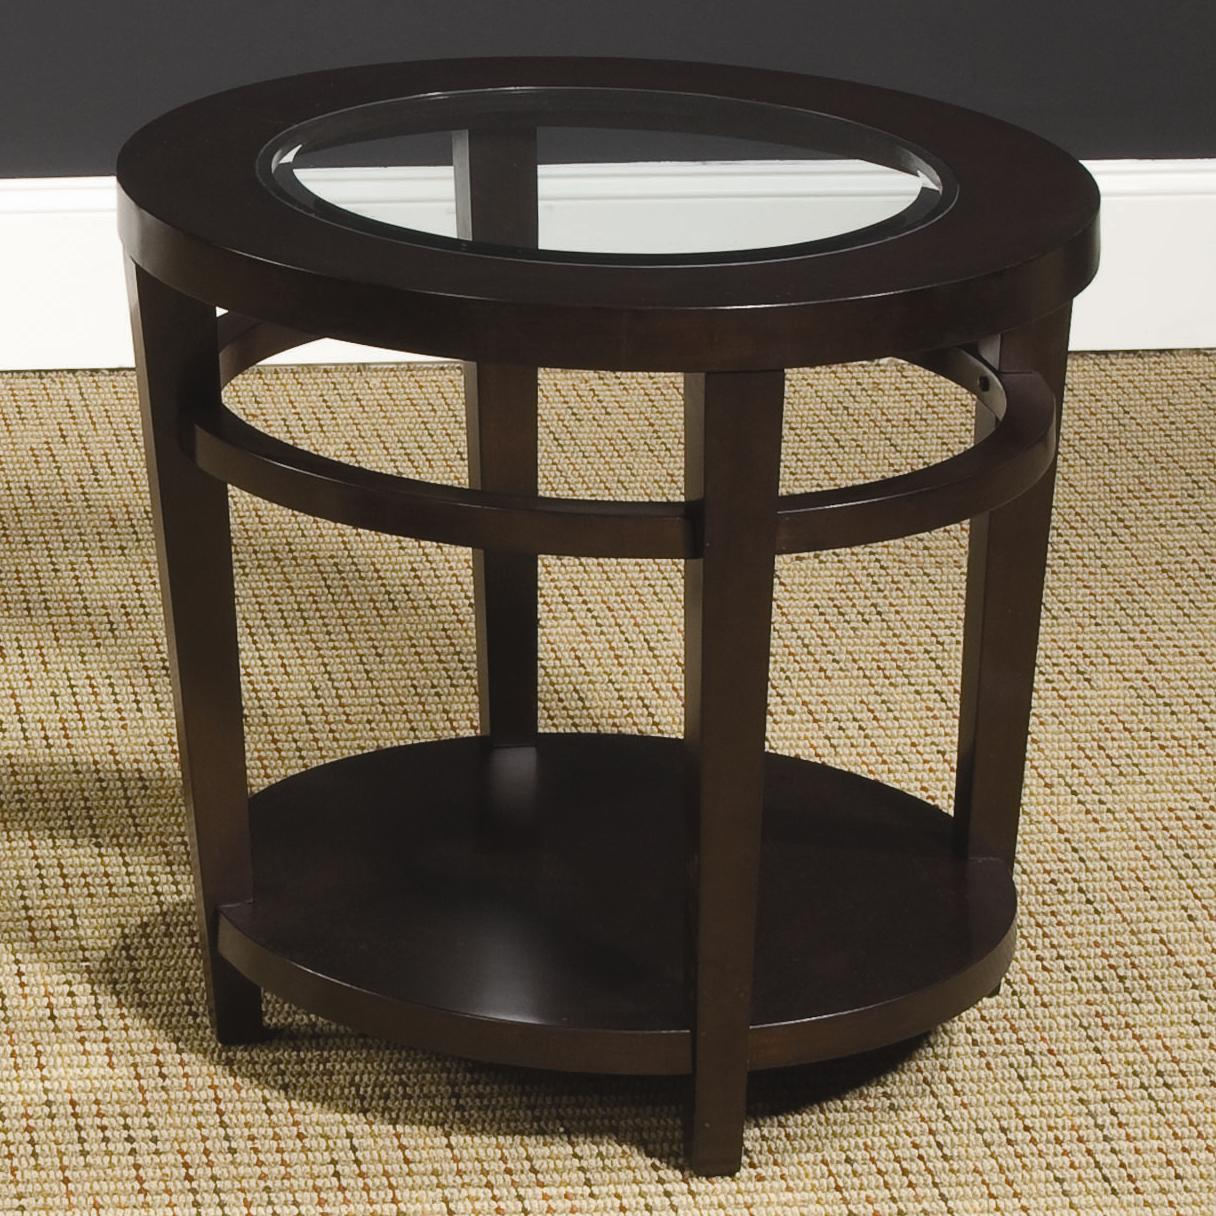 Urbana Round End Table by Hammary at Darvin Furniture